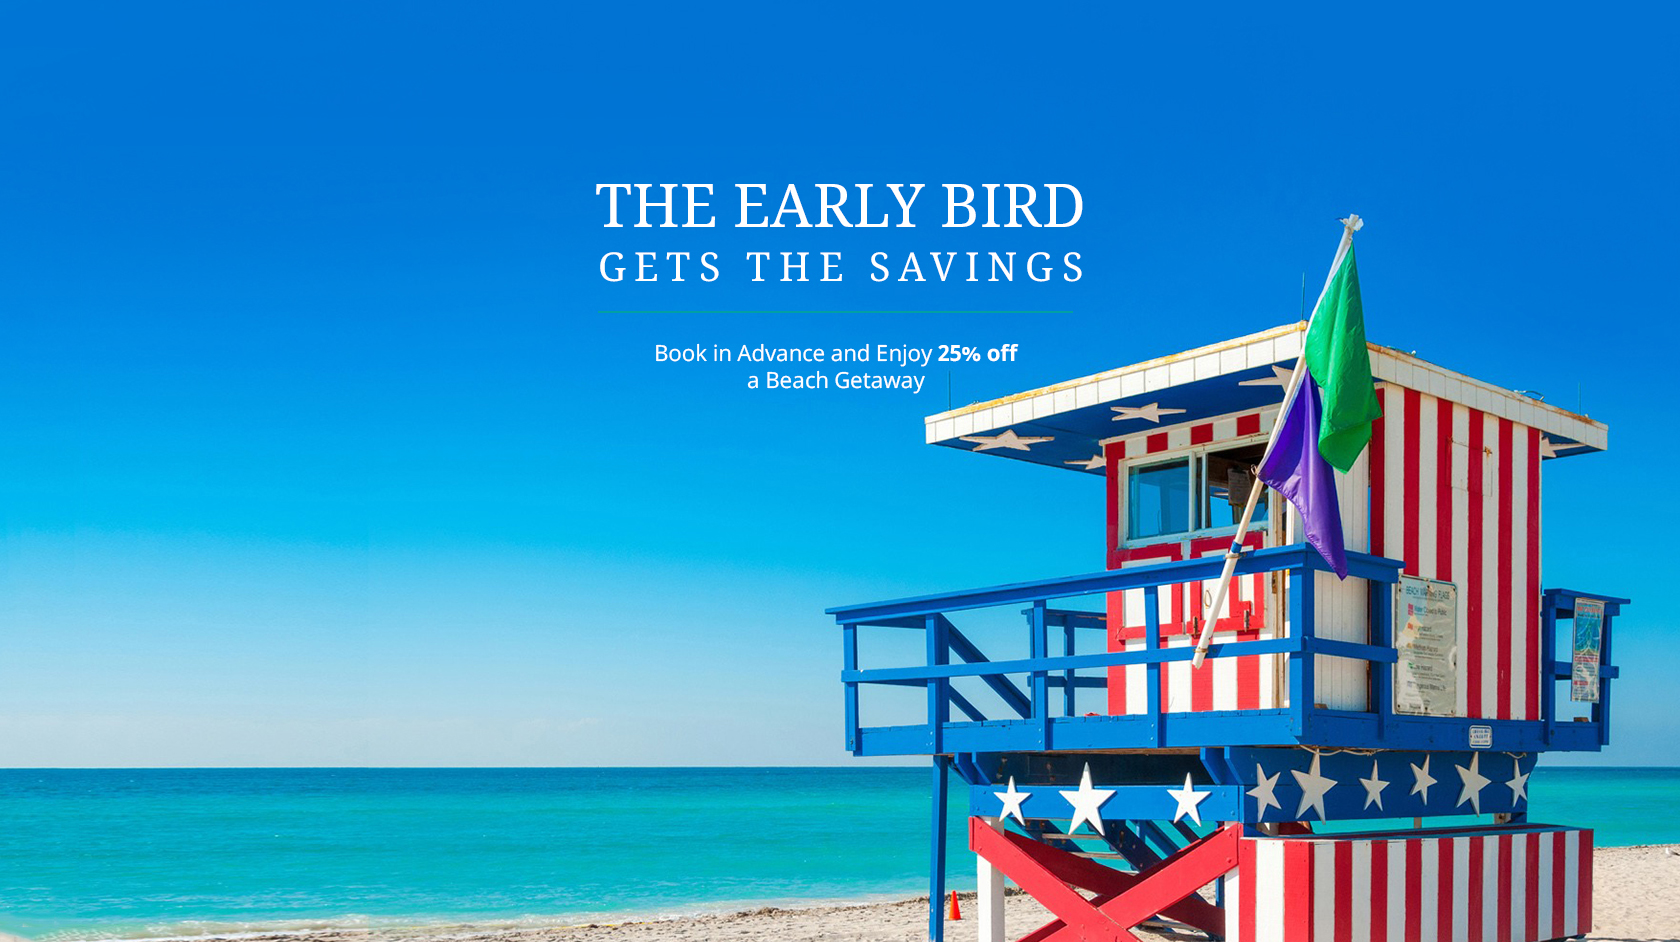 The Early Bird Gets the Savings, Book in Advance and Enjoy 25%off a Beach Get Away